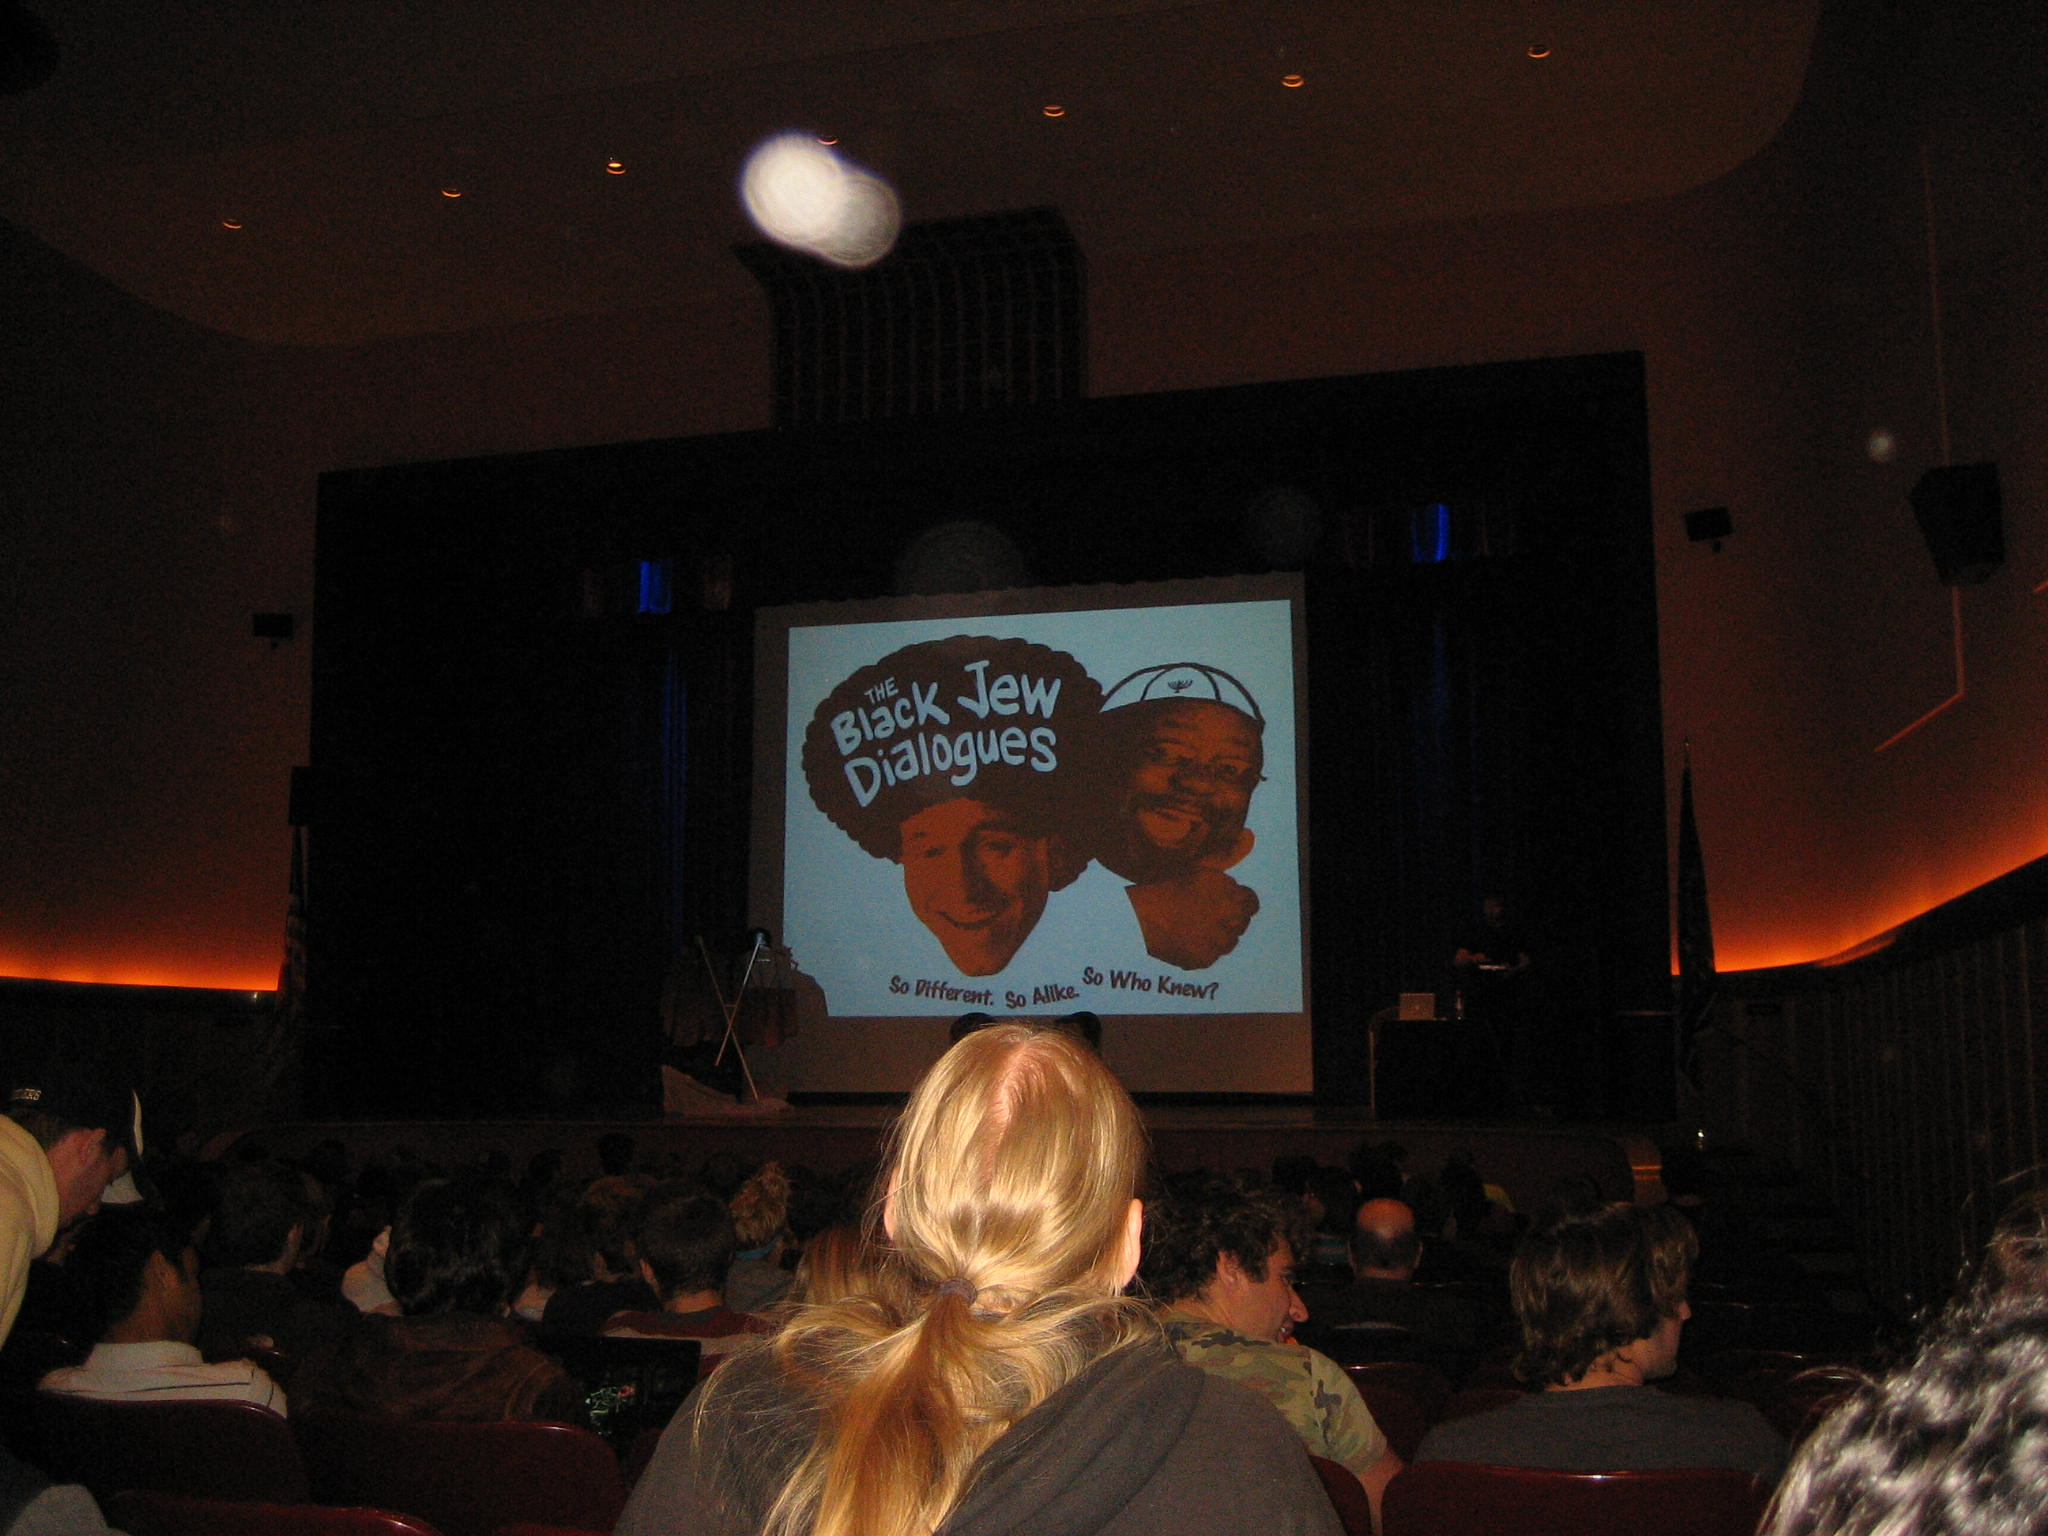 The Black-Jew Dialogues at Purdue University